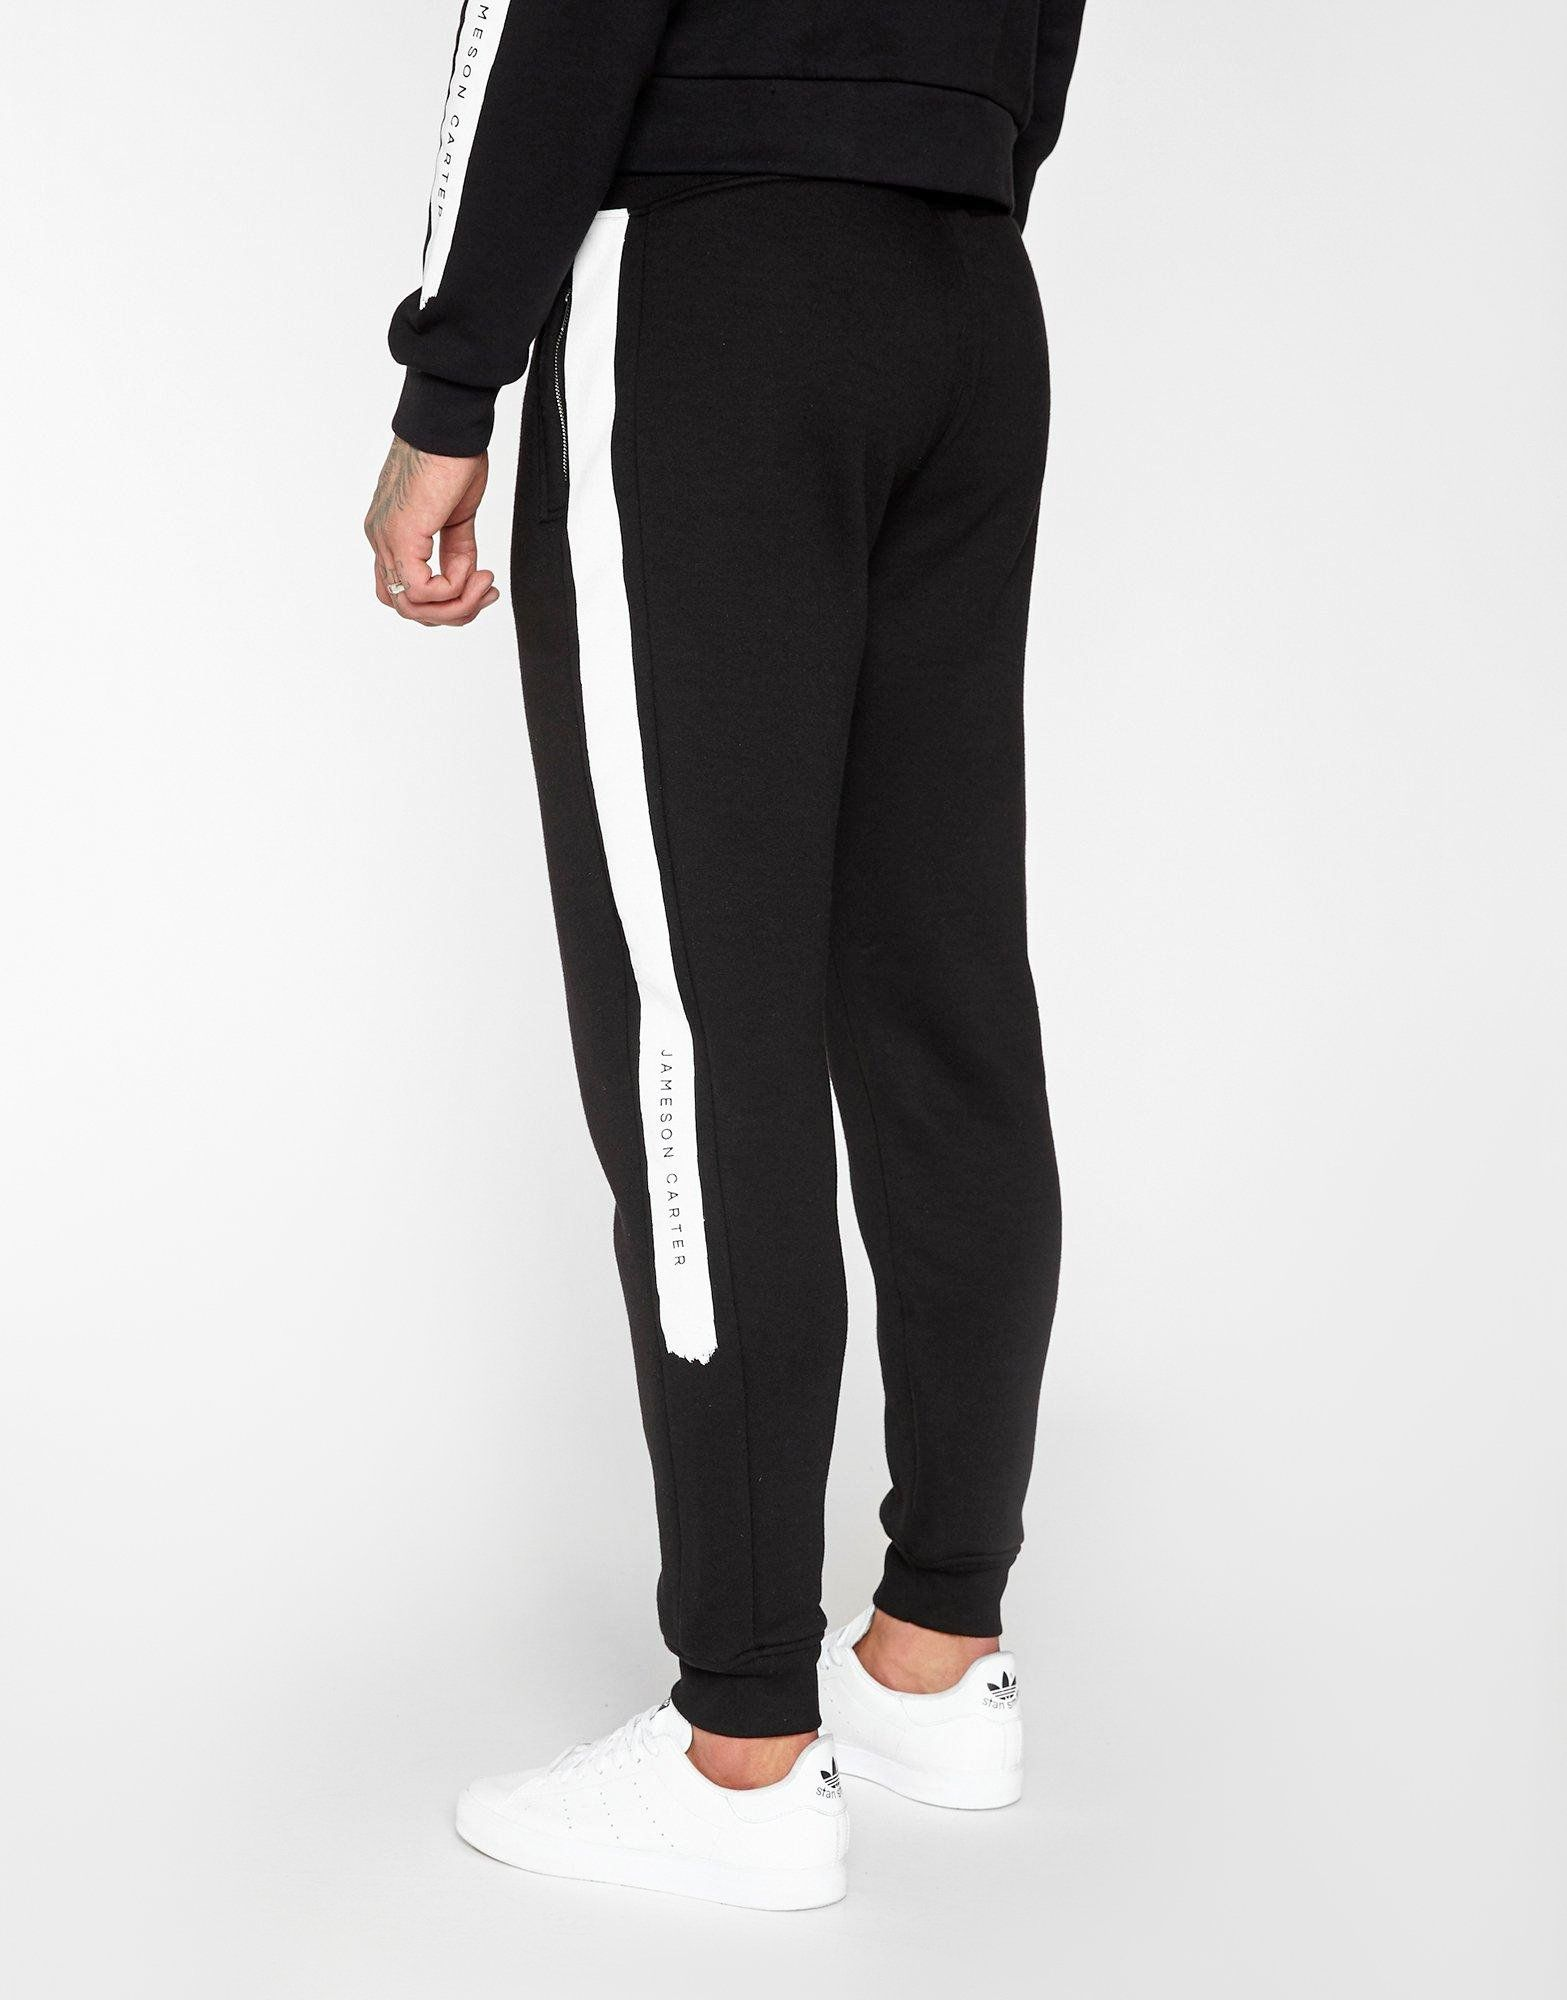 JAMESON CARTER Paint Stripe Track Pants